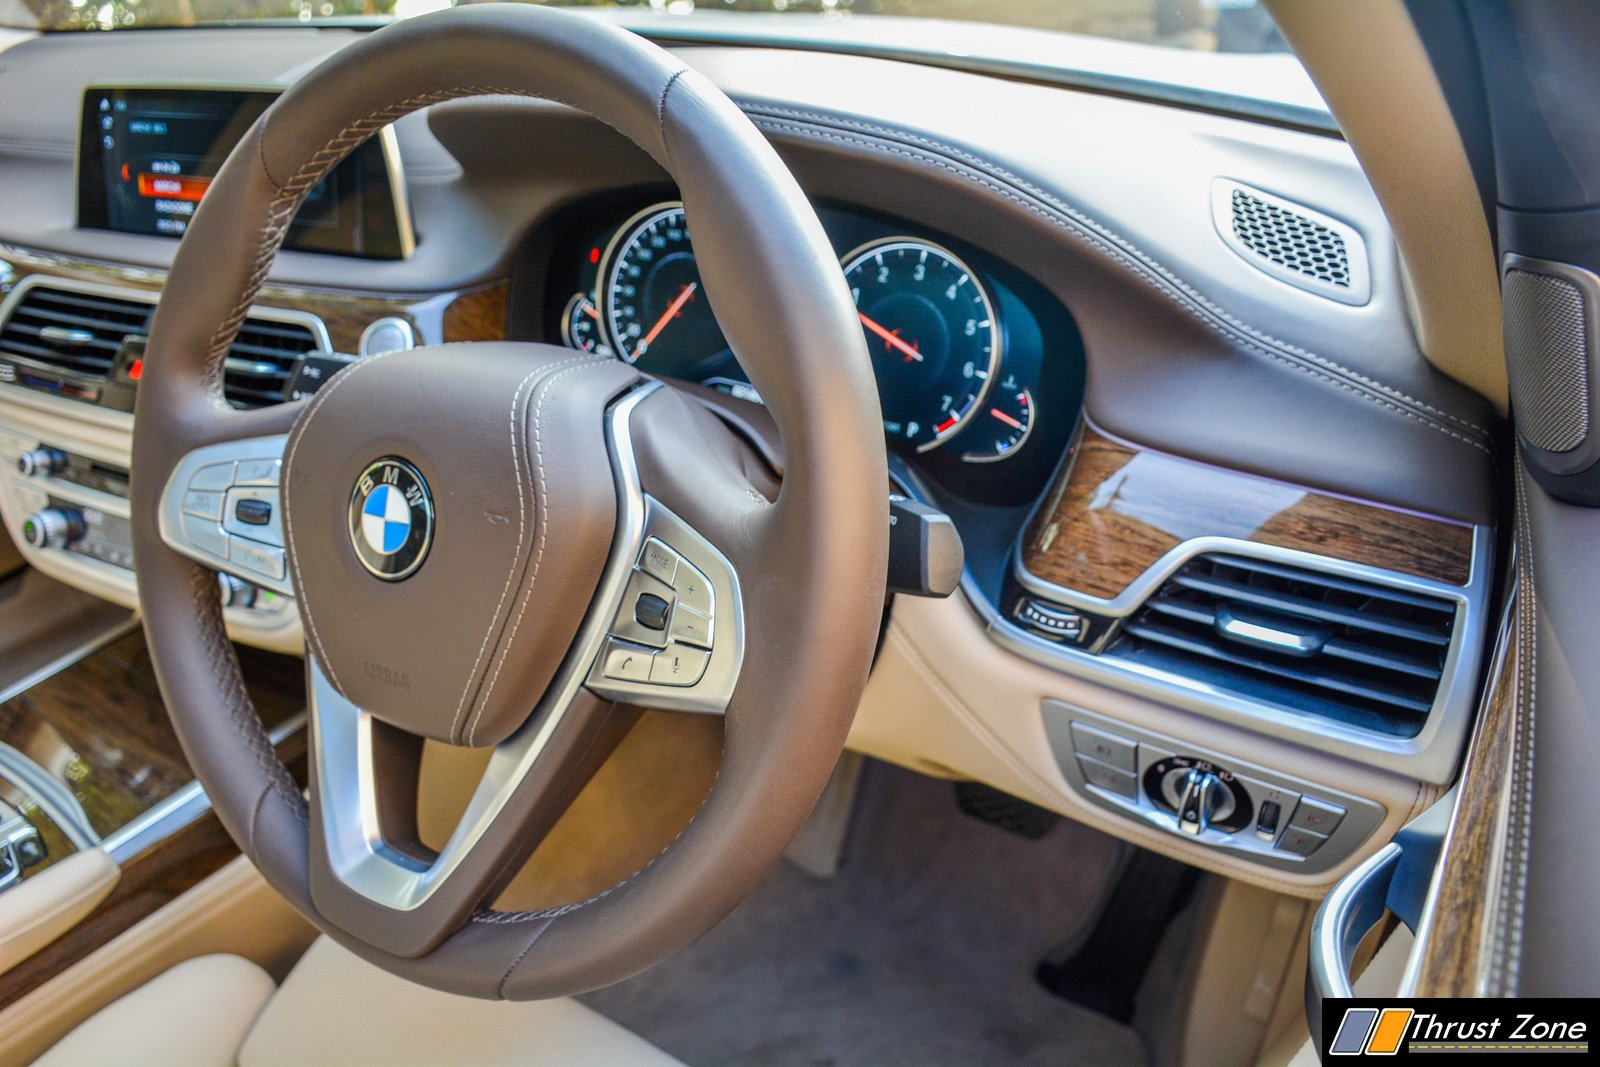 https://www.thrustzone.com/wp-content/uploads/2018/12/2018-BMW-7-SERIES-740i-INDIA-Review-40.jpg